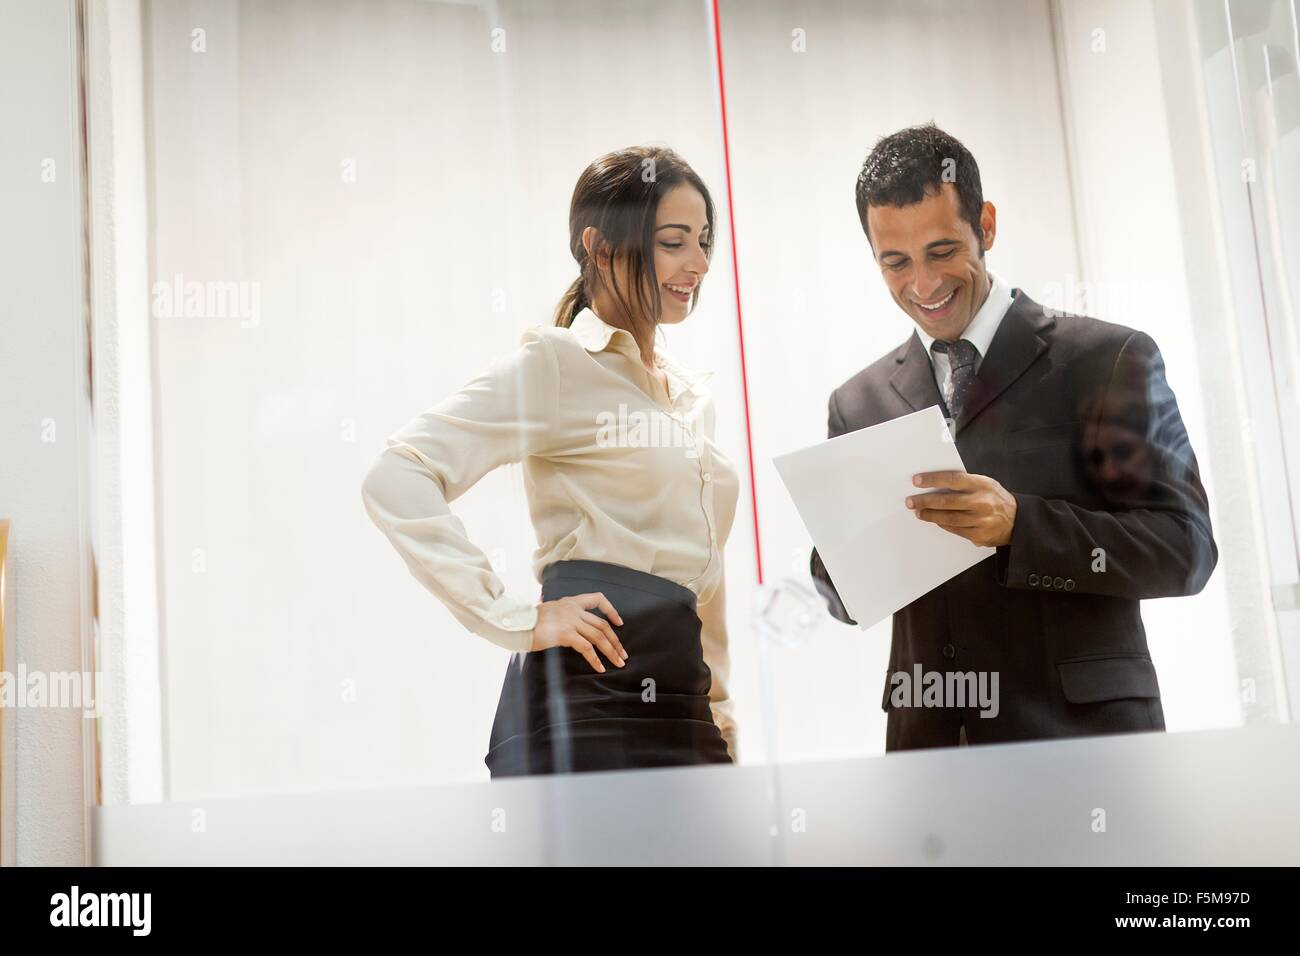 Businessman and businesswoman looking at documents, having conversation - Stock Image